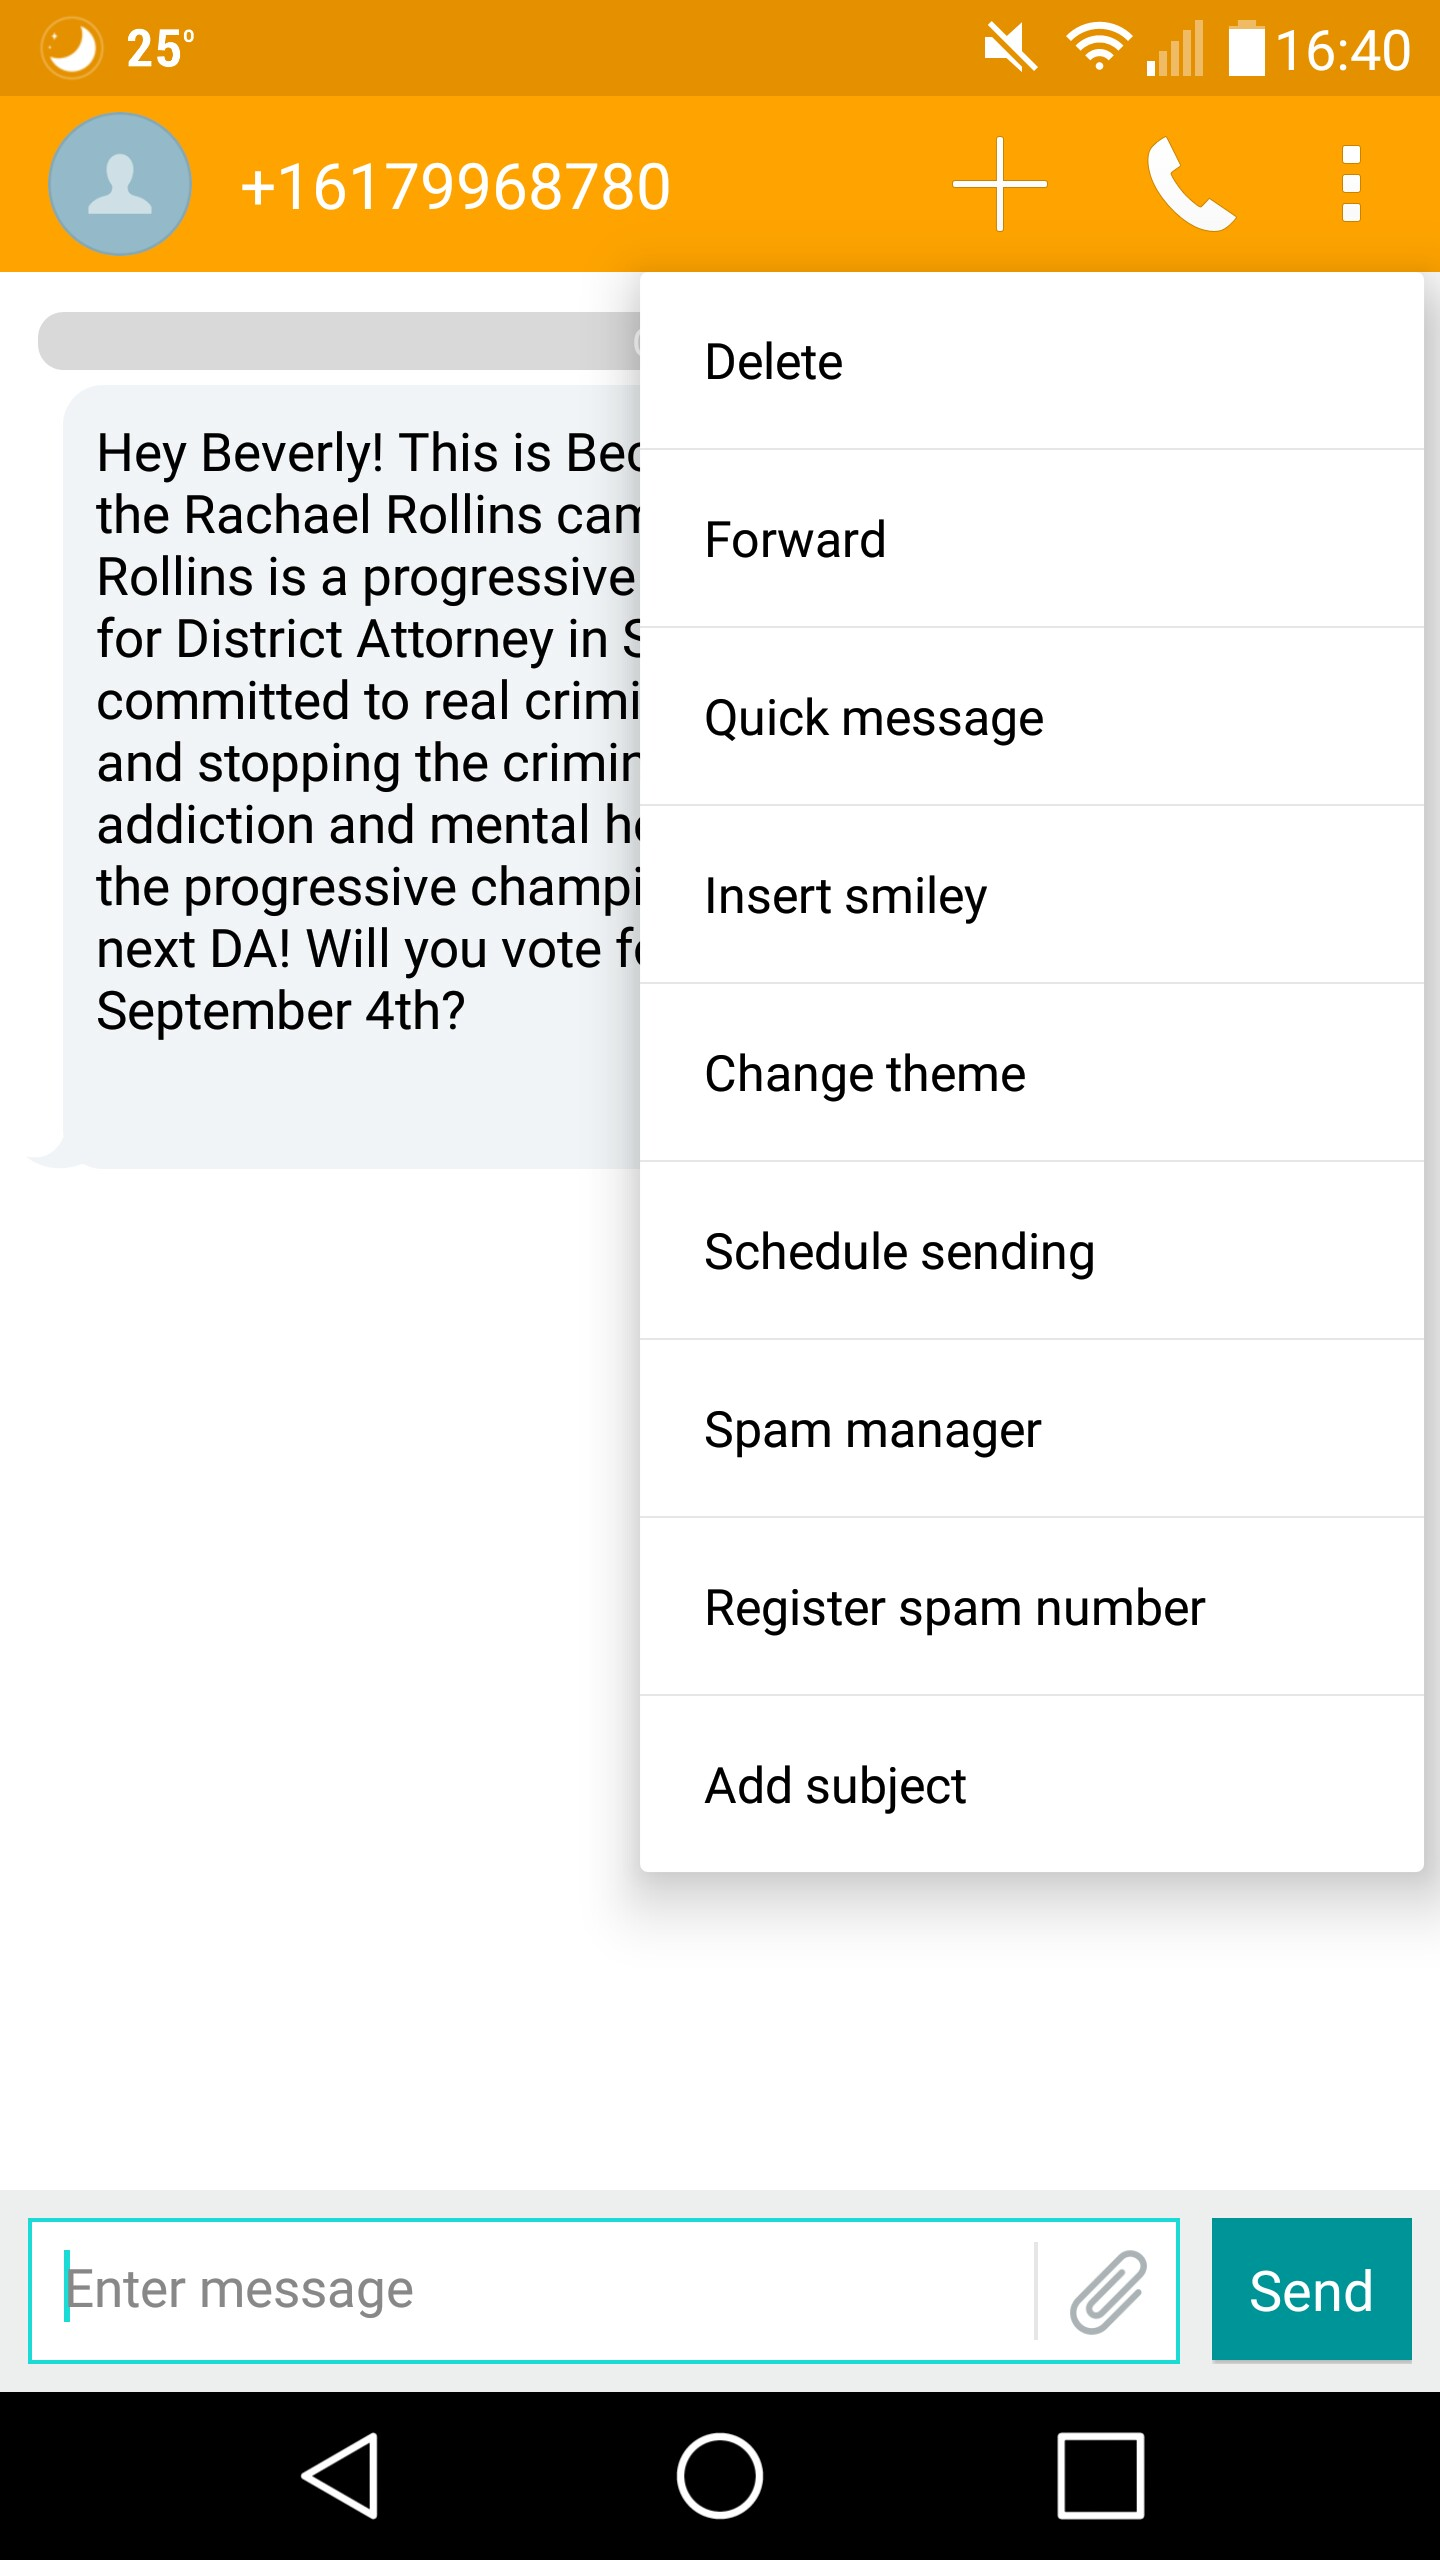 How To Spam A Phone Number With Texts : phone, number, texts, Phone, Number, Sender, Message, Android, Default, Messaging, Program?, Enthusiasts, Stack, Exchange